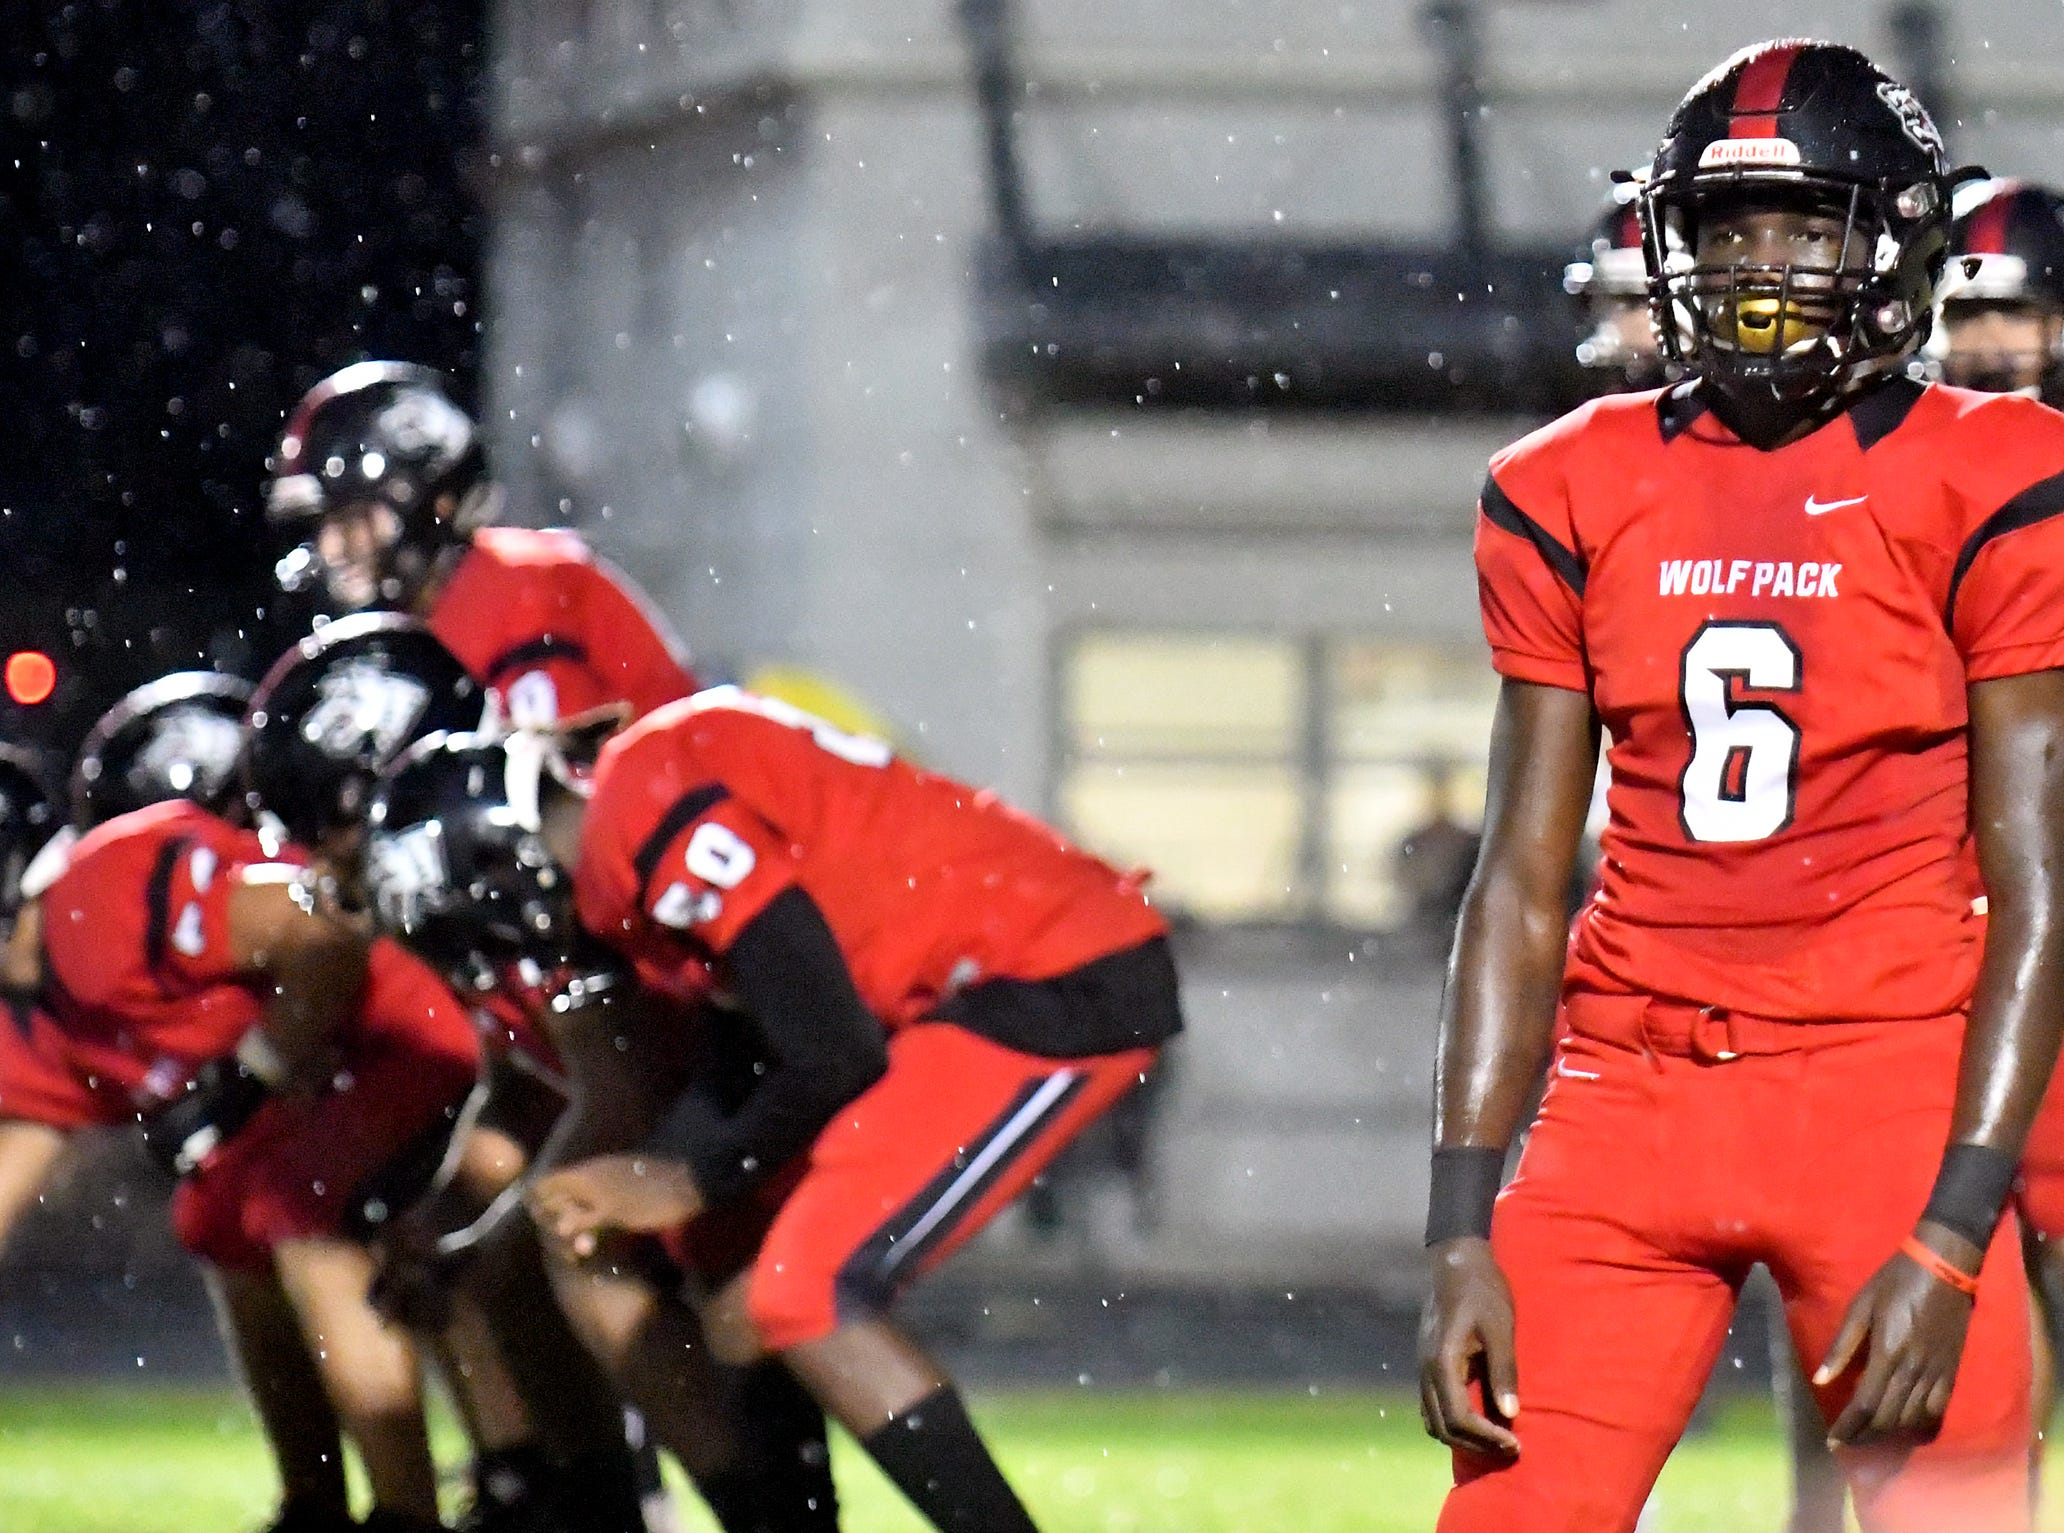 South Fort Myers High School wide receiver Julian Durham (6) looks to the sidelines for the next play during their game with Palmetto Ridge High School in Fort Myers ,Friday, Sept. 21, 2018.